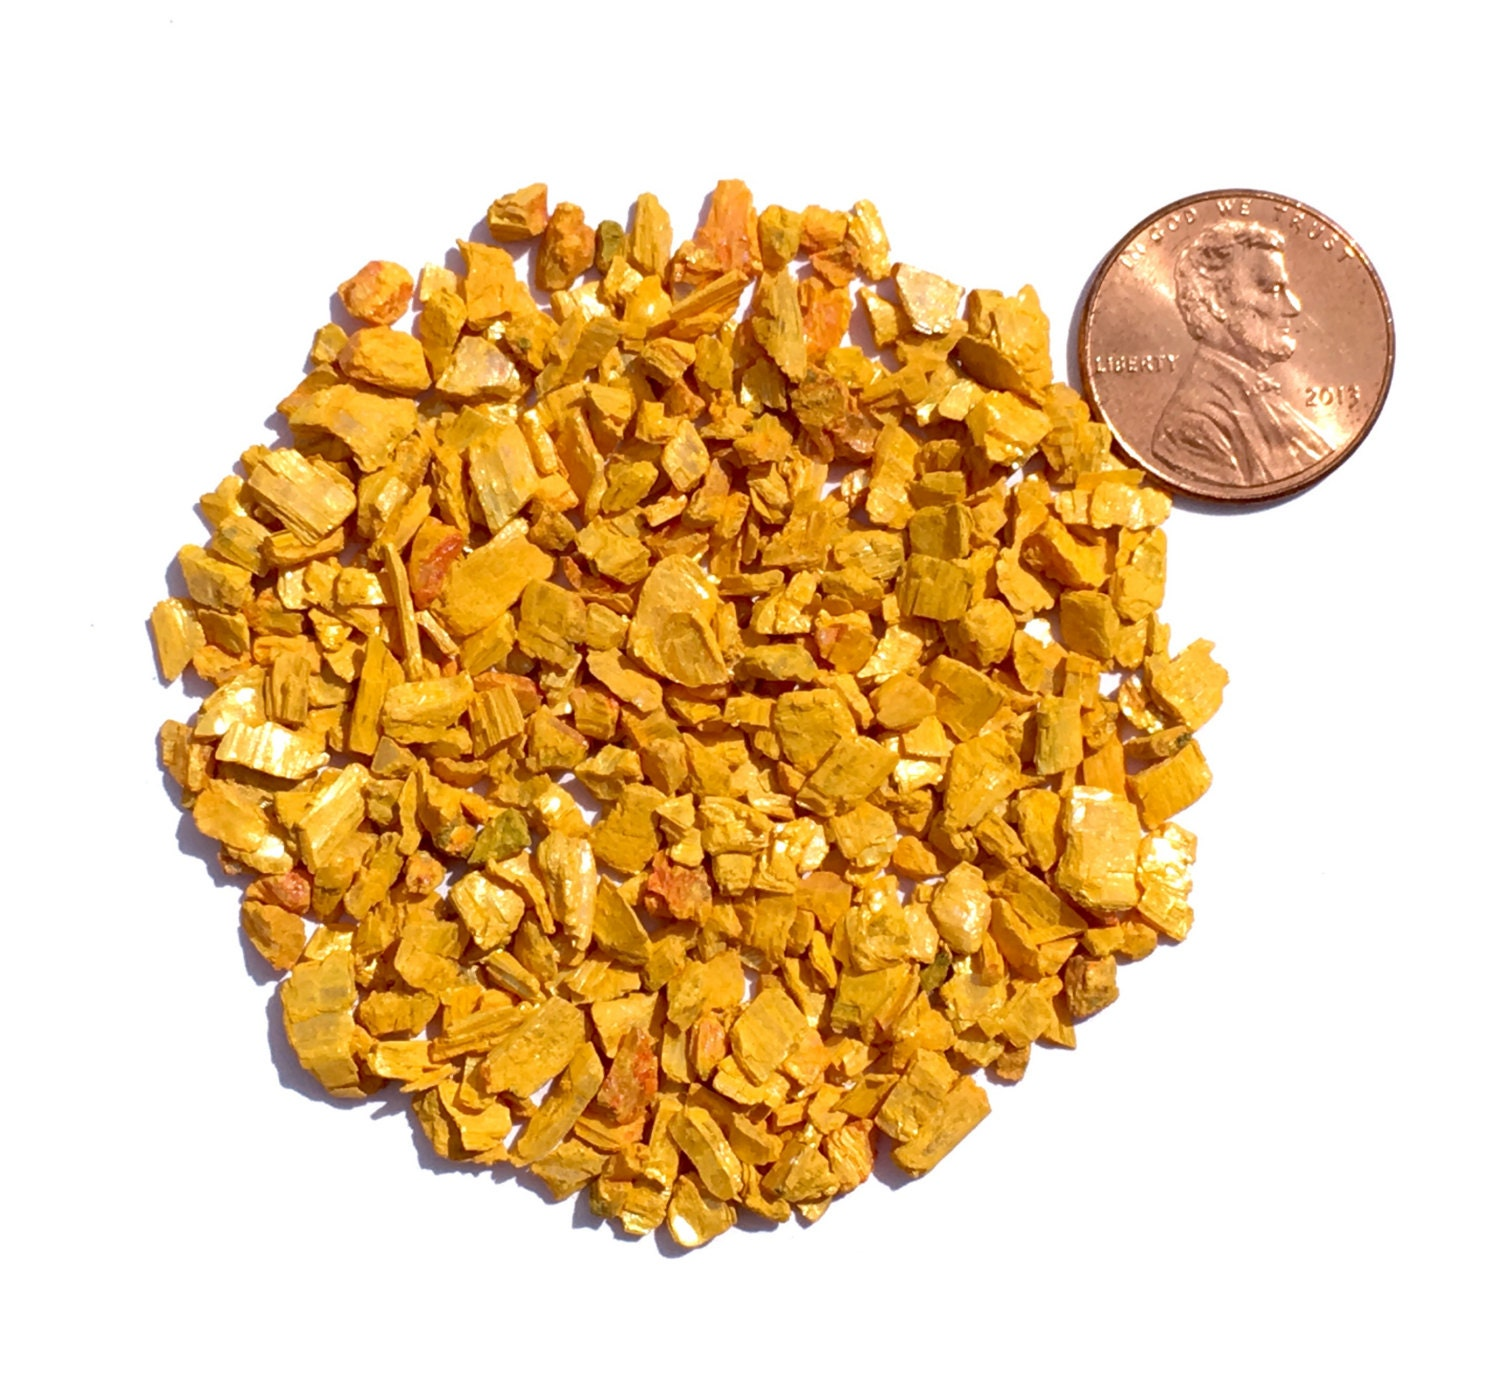 Crushed Gemstone For Inlays : Crushed orpiment stone inlay coarse ounce from